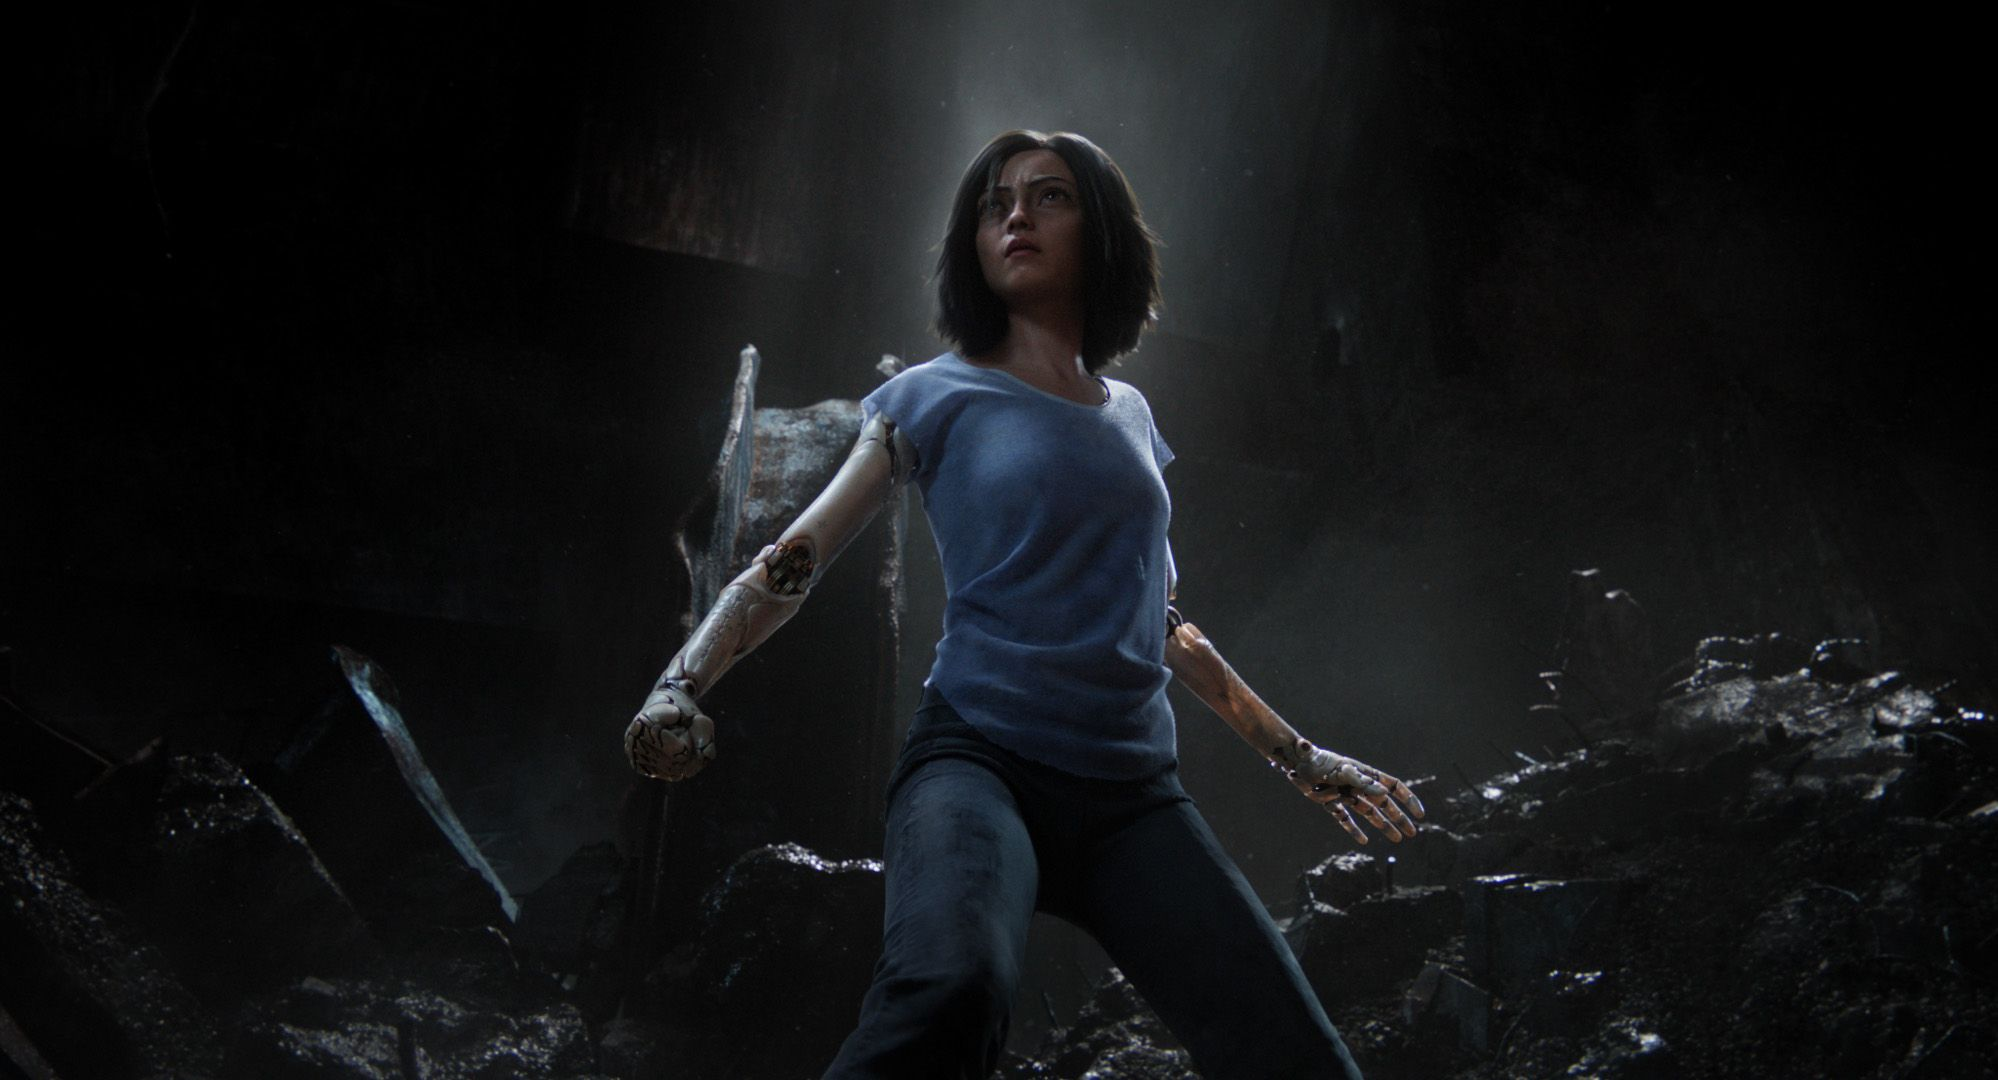 alita-battle-angel-epk-aba_dtlrA_stills_pull01-06_rec709_120517